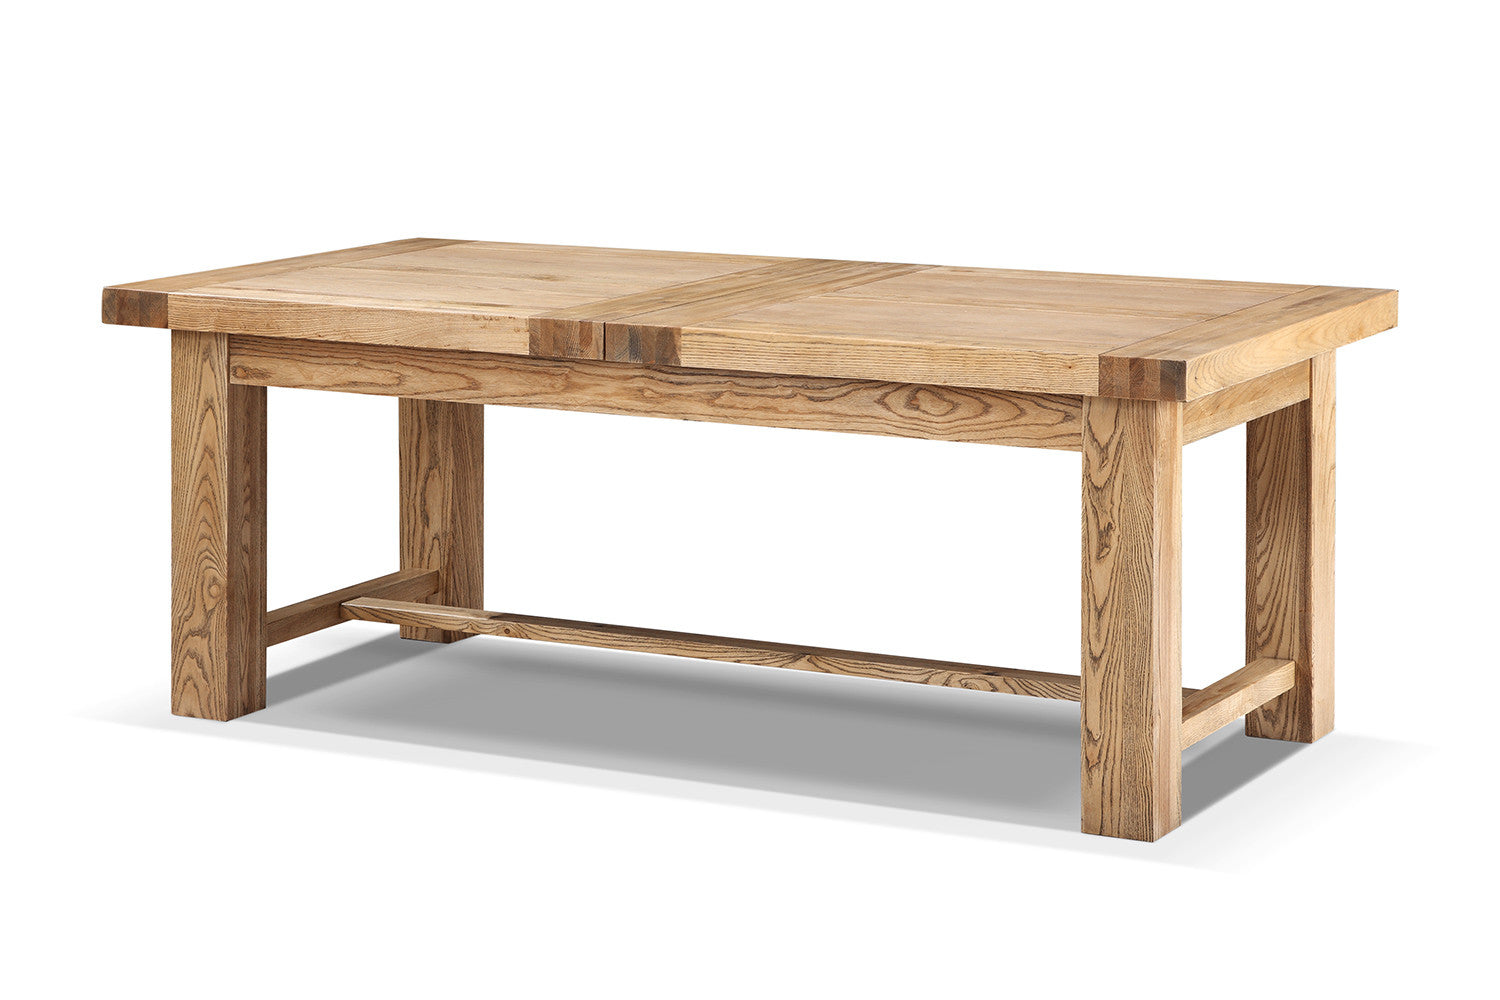 20 beau table a manger rectangulaire bois kqk9 meuble de for Table a manger rectangulaire